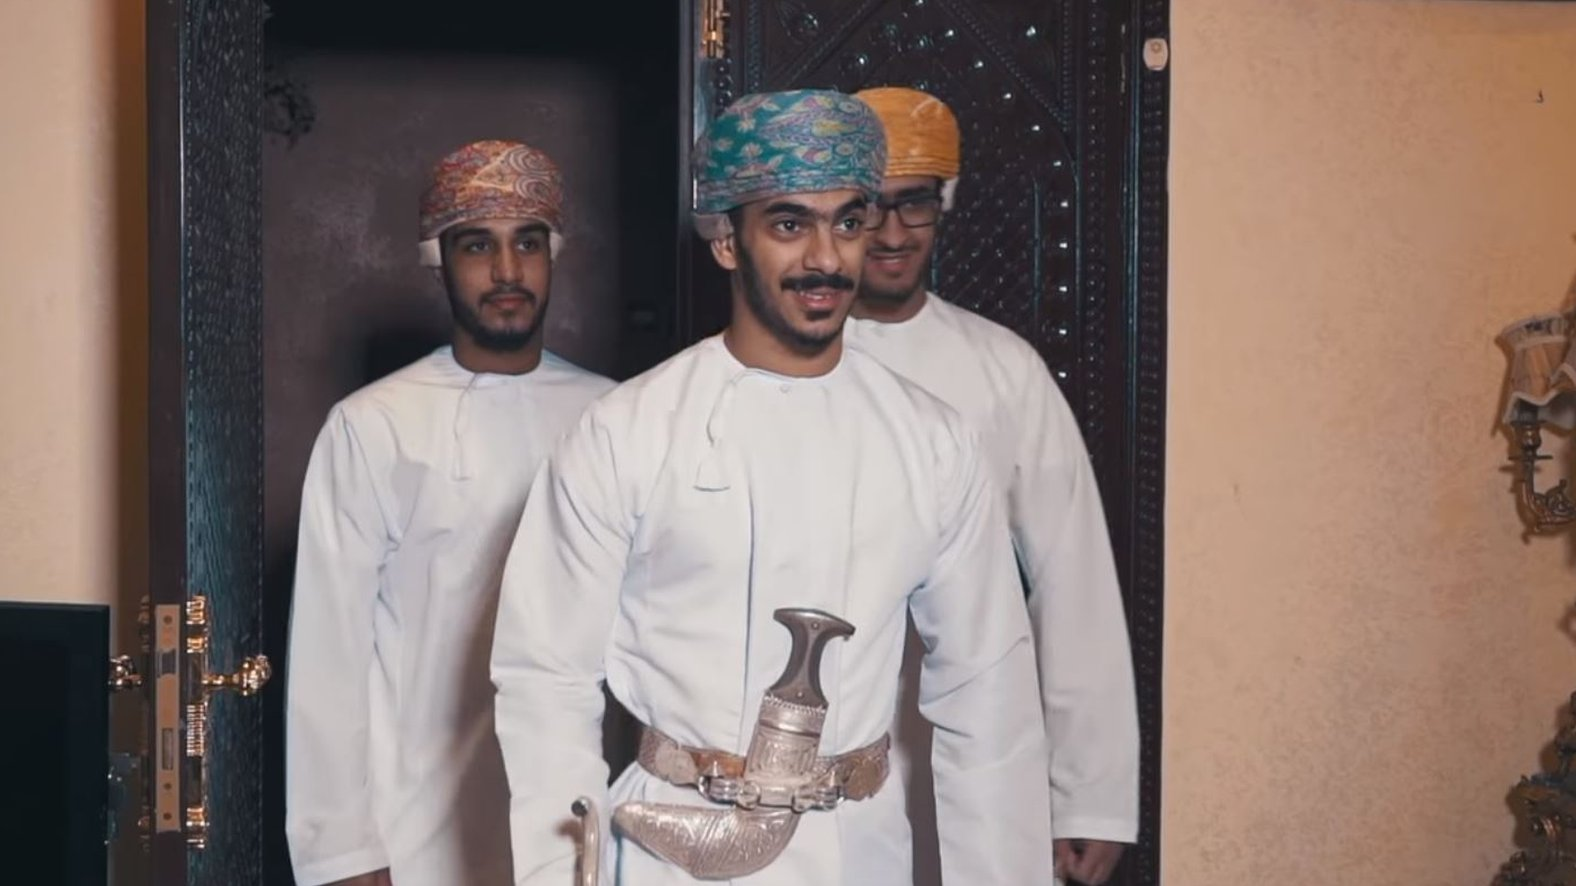 Arab Despacito: Comedy version of the song complains about high dowries